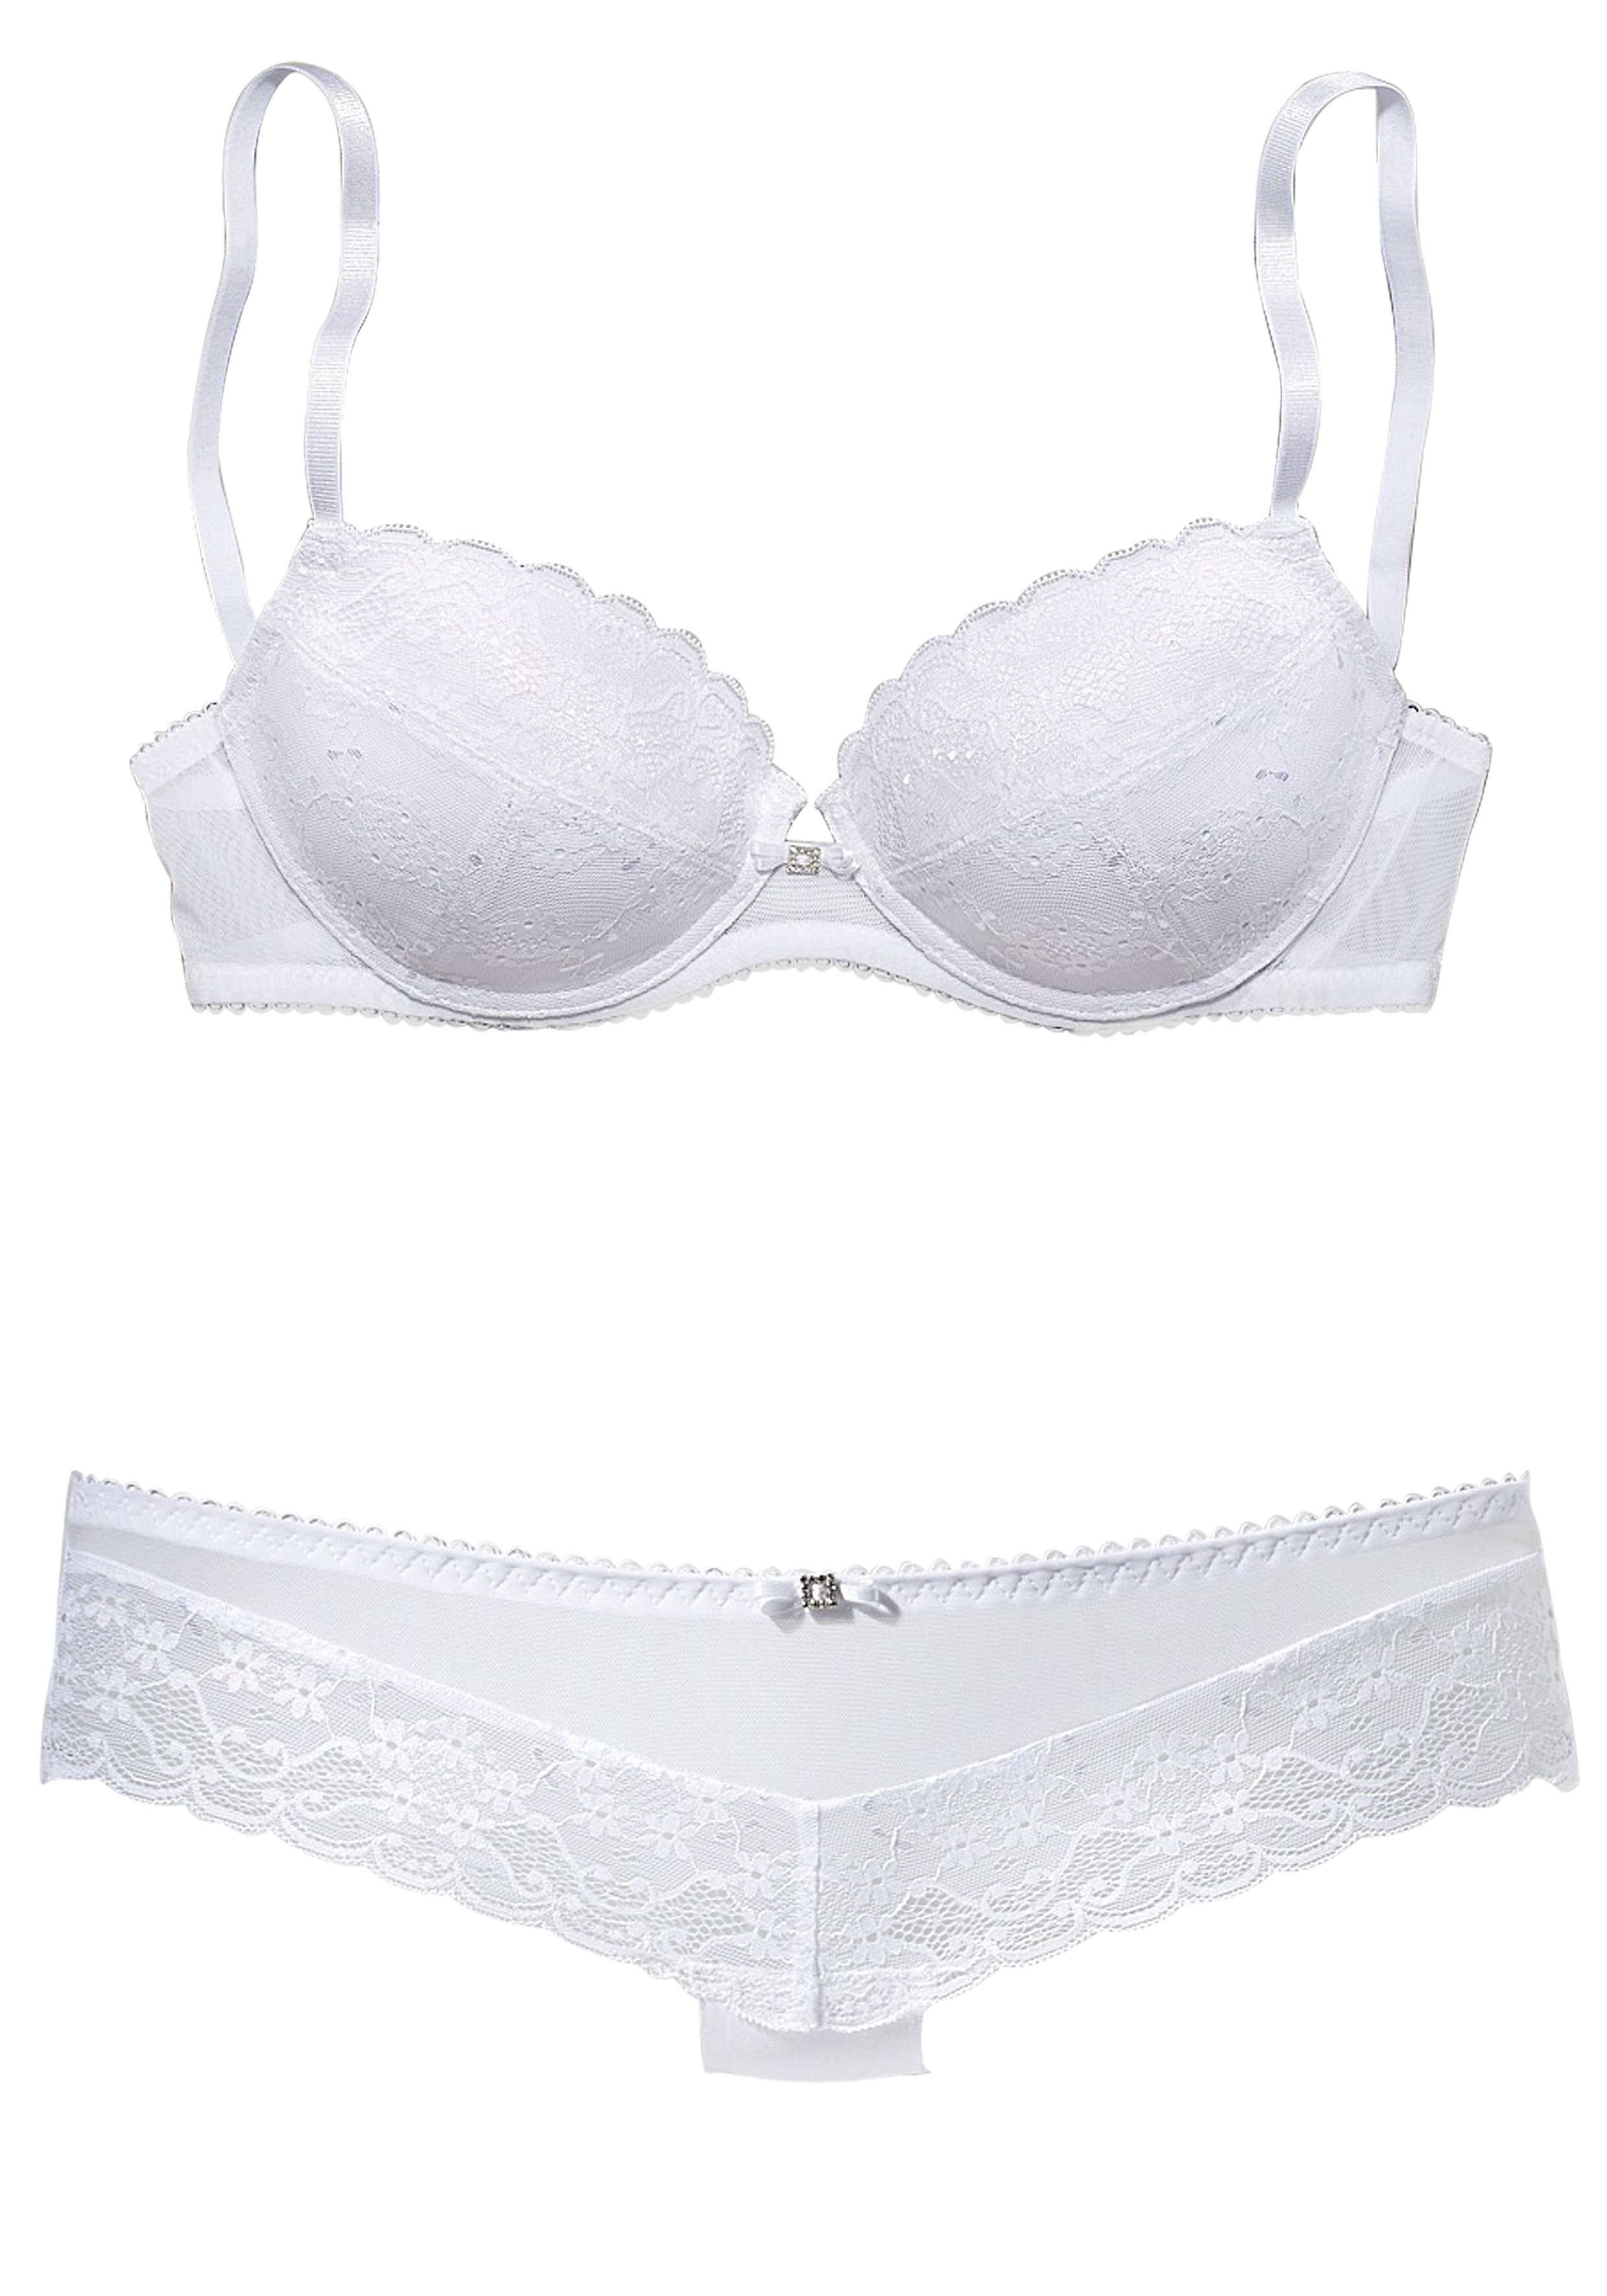 Vivance Collection VIVANCE Set van push-up-BH en hipster goedkoop op lascana.nl kopen